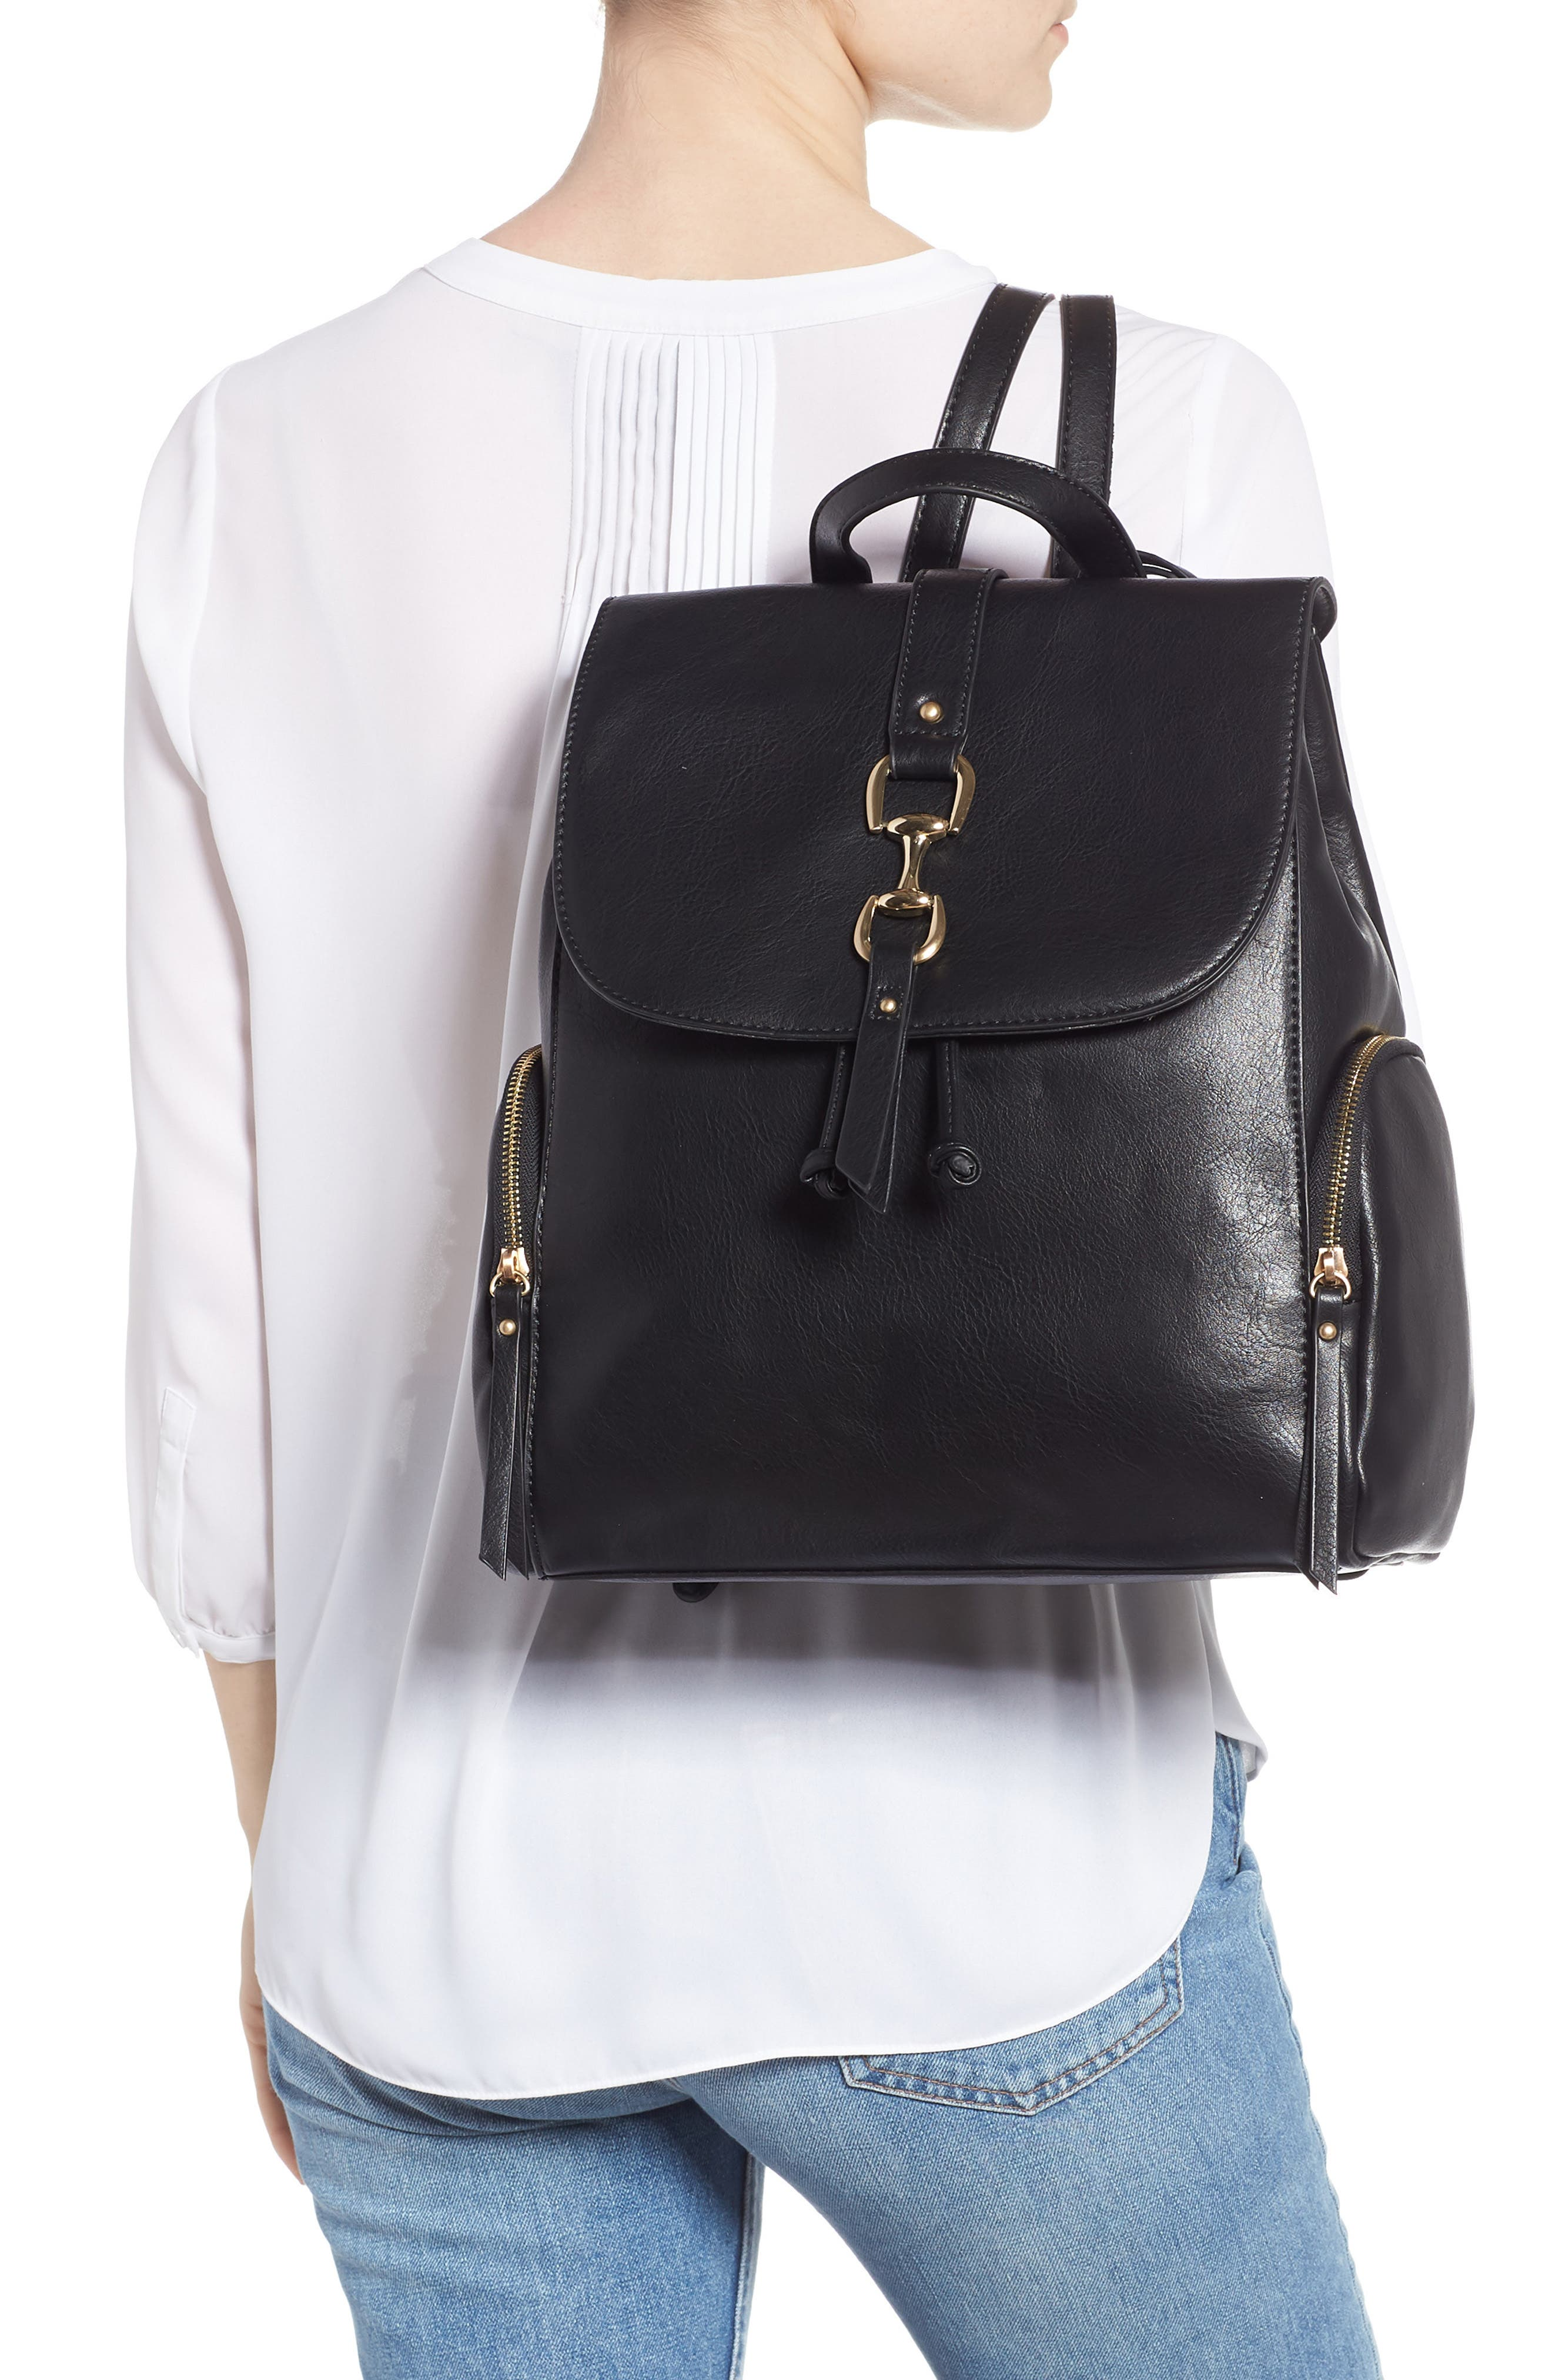 Marah Faux Leather Backpack,                             Alternate thumbnail 2, color,                             BLACK